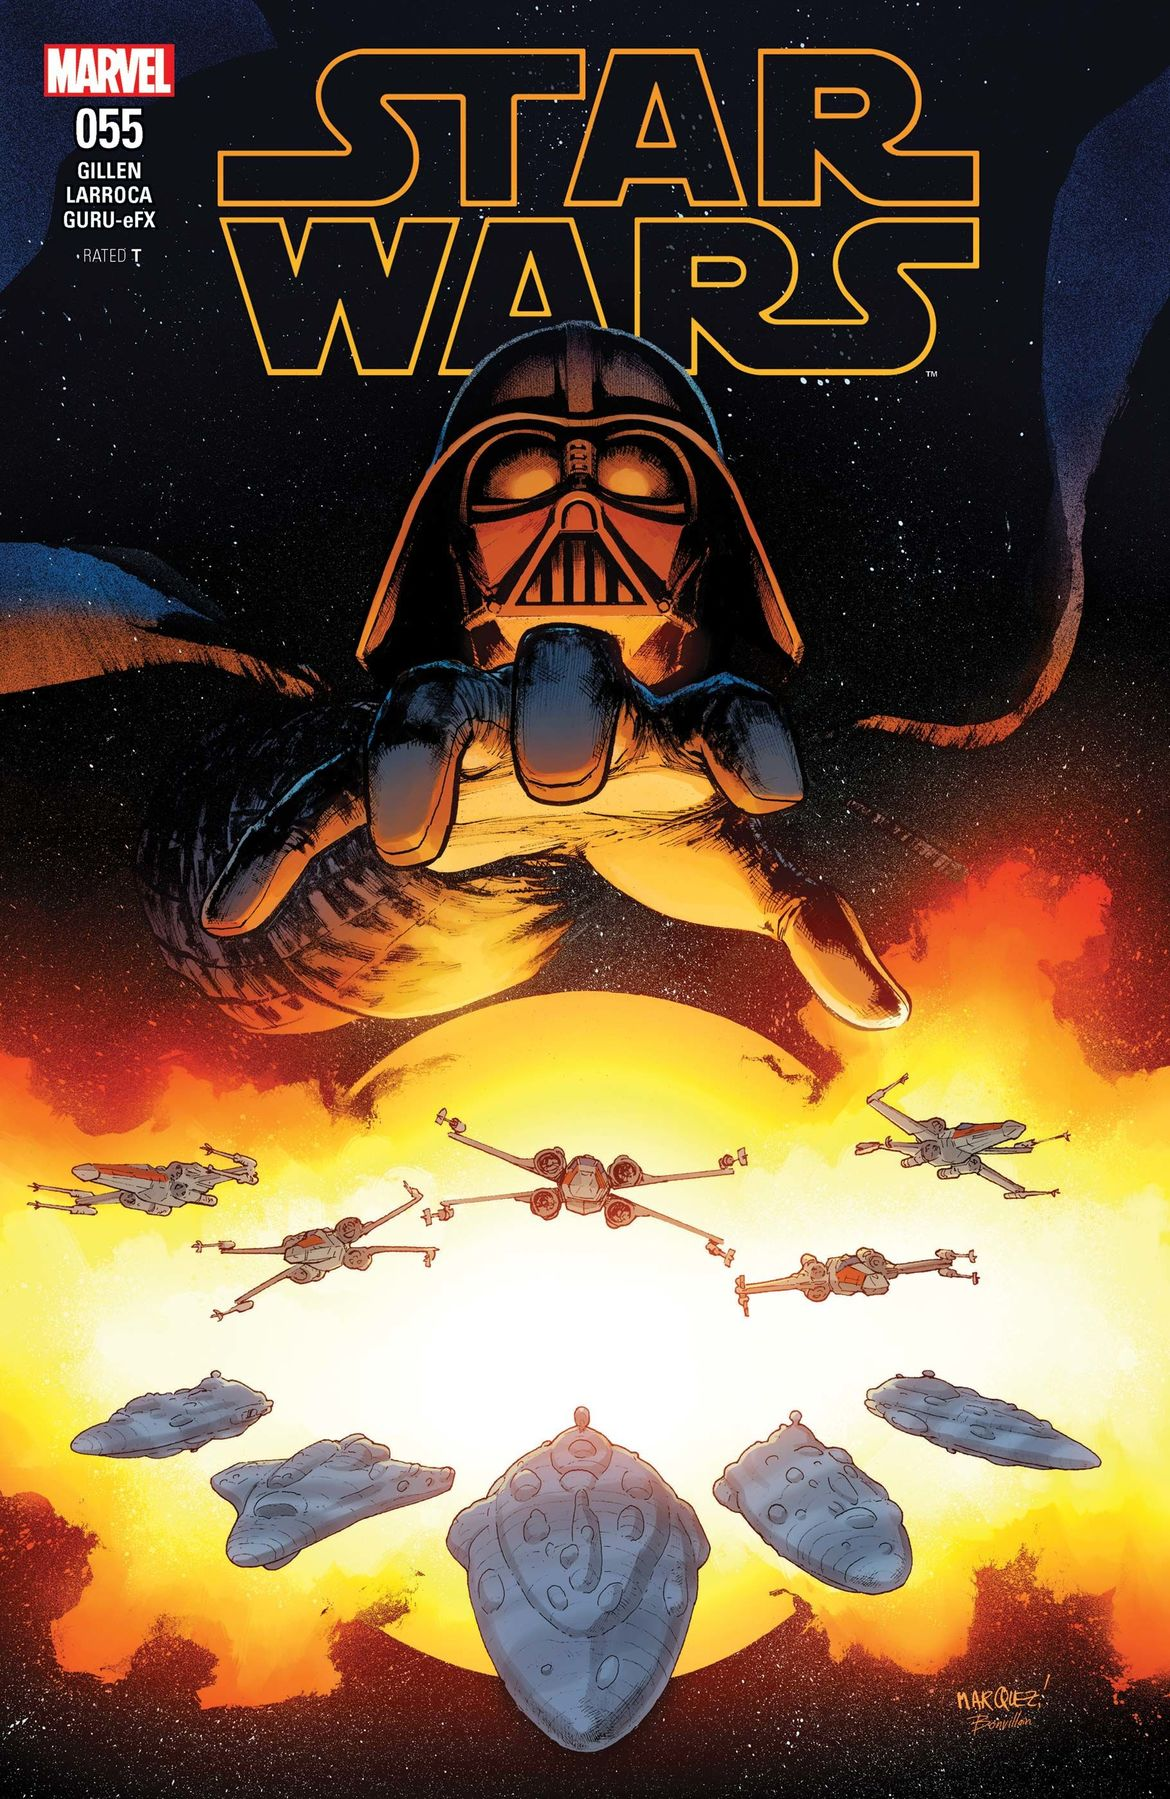 Star Wars comic cover